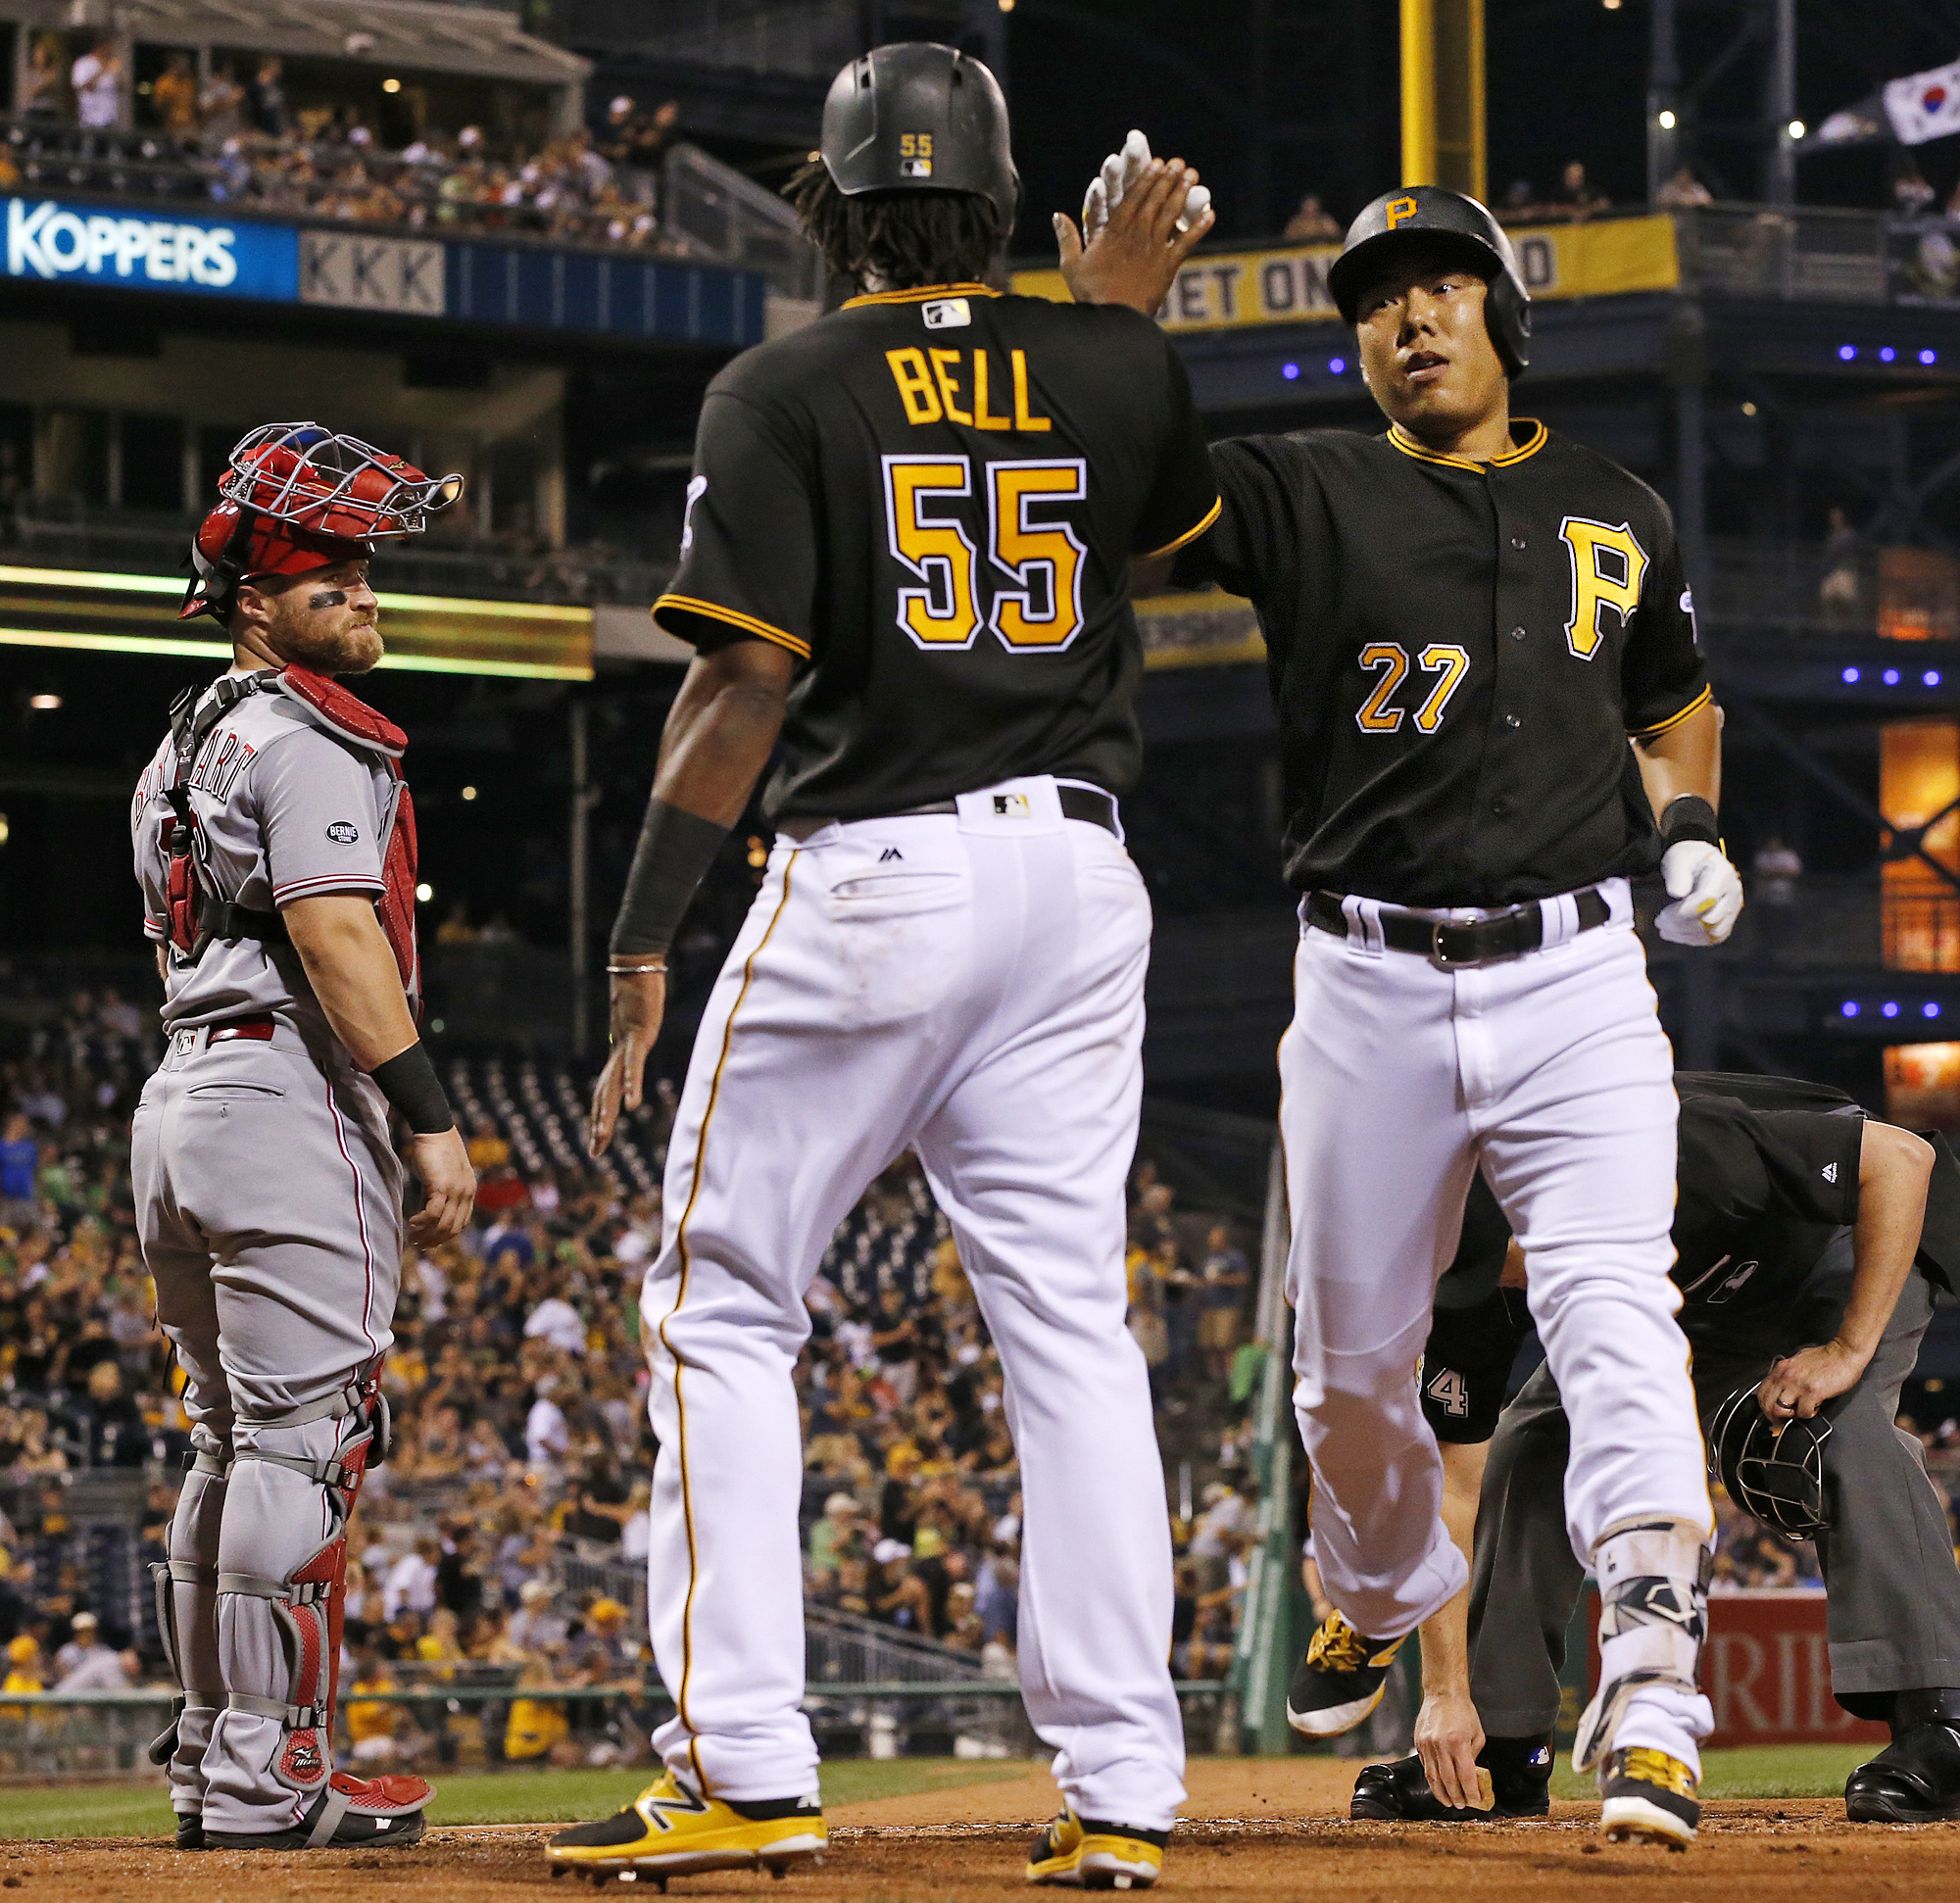 Pittsburgh Pirates' Jung Ho Kang (27) celebrates with Josh Bell (55) after hitting a two-run home run off Cincinnati Reds starting pitcher Robert Stephenson during the third inning of a baseball game in Pittsburgh, Saturday, Sept. 10, 2016. (AP Photo/Gene